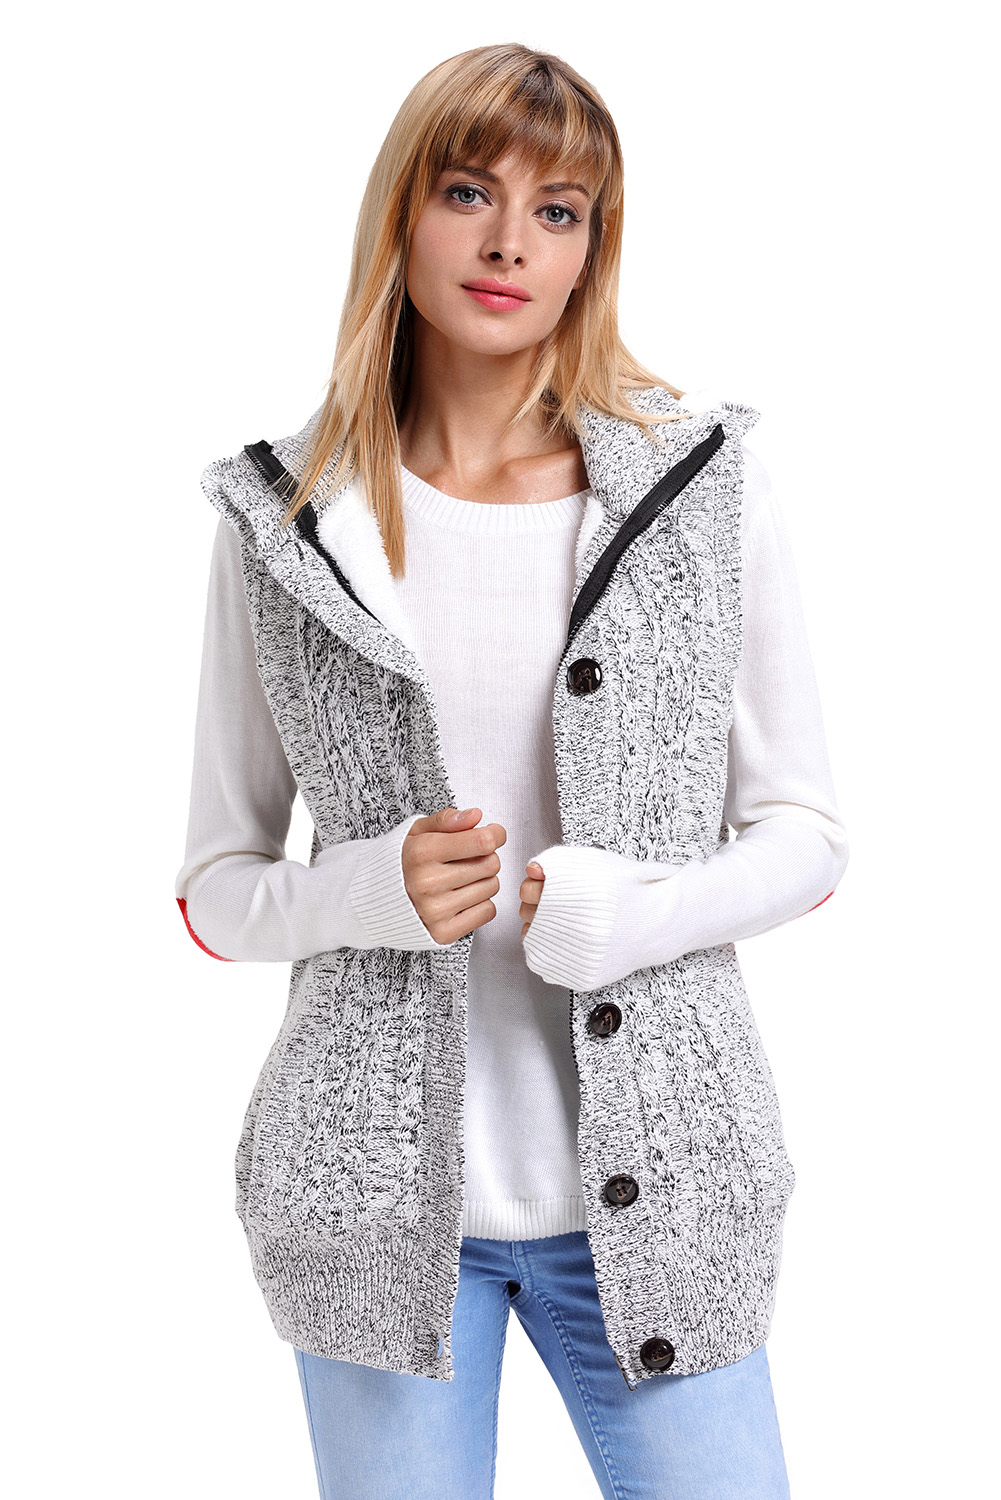 0b0b9d1286a5d Cable knit hooded sweater vest womens autumn winter fall sleeveless ...